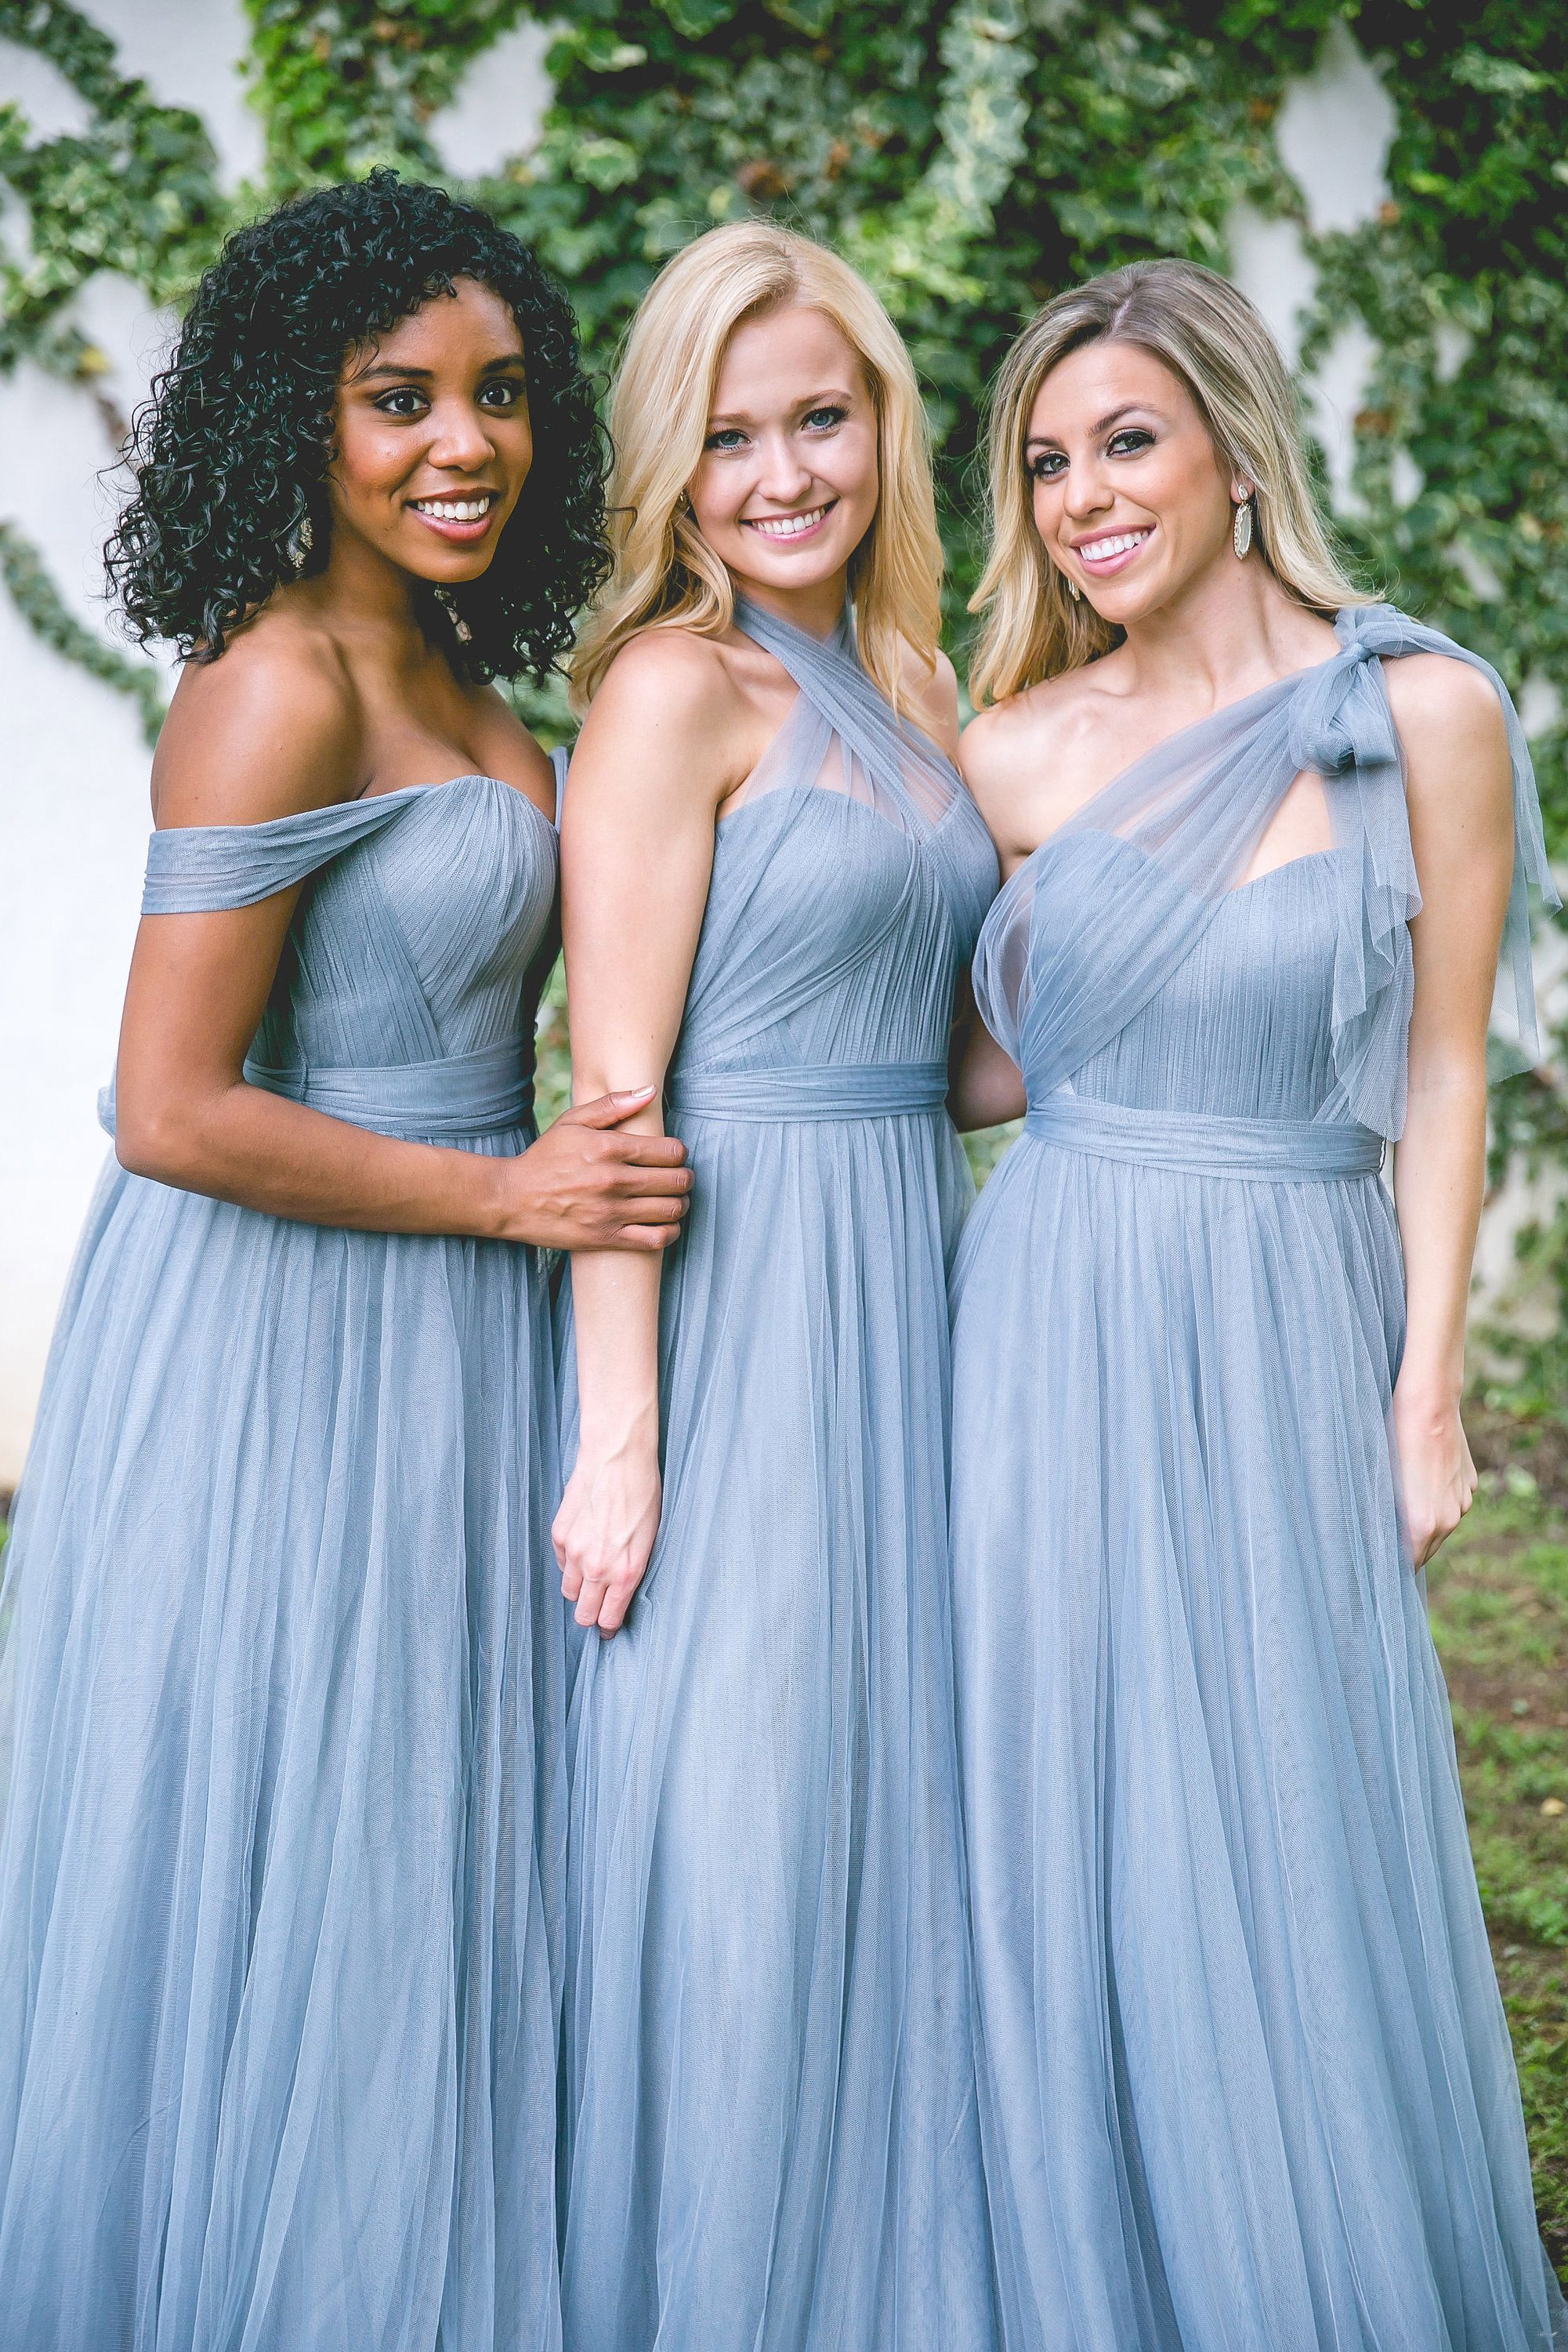 Rosalie Tulle Convertible Dress | Convertible, Wedding things and ...